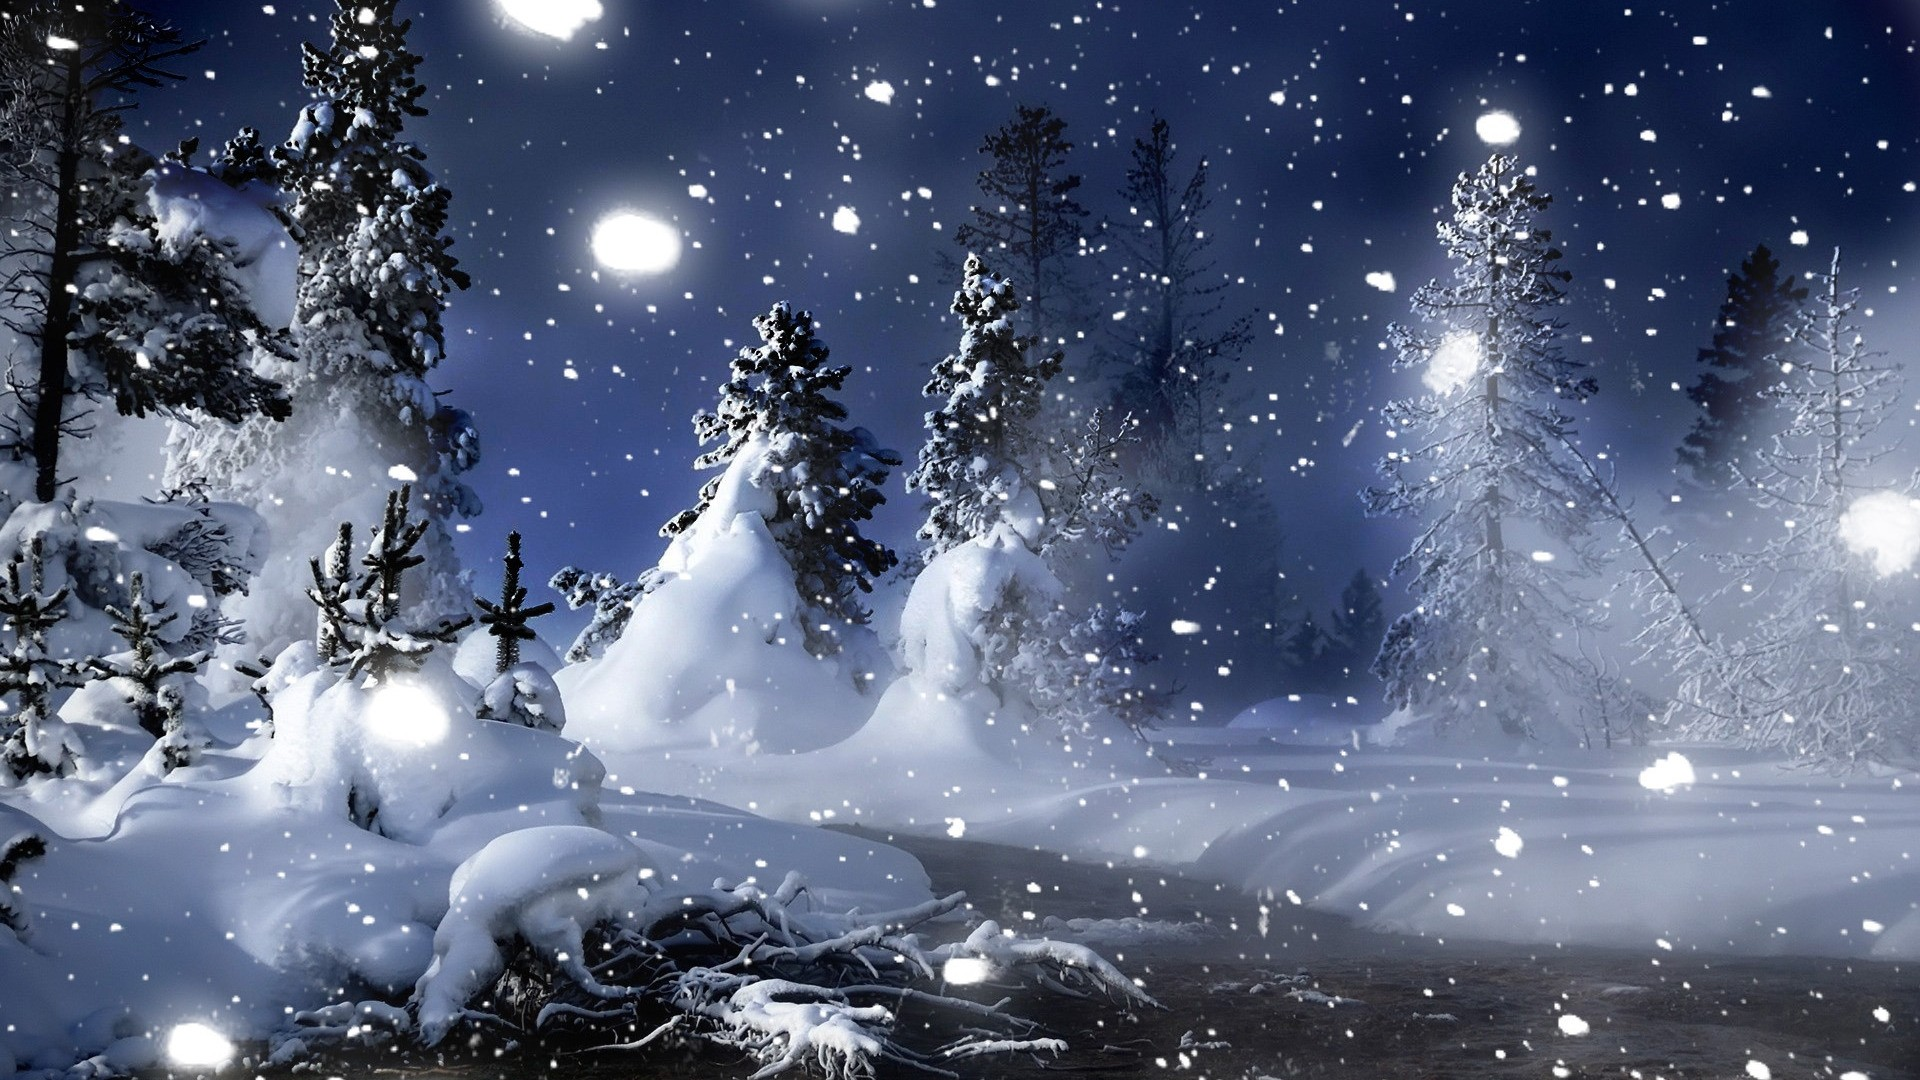 Winter background images download free awesome high for Foto inverno per desktop